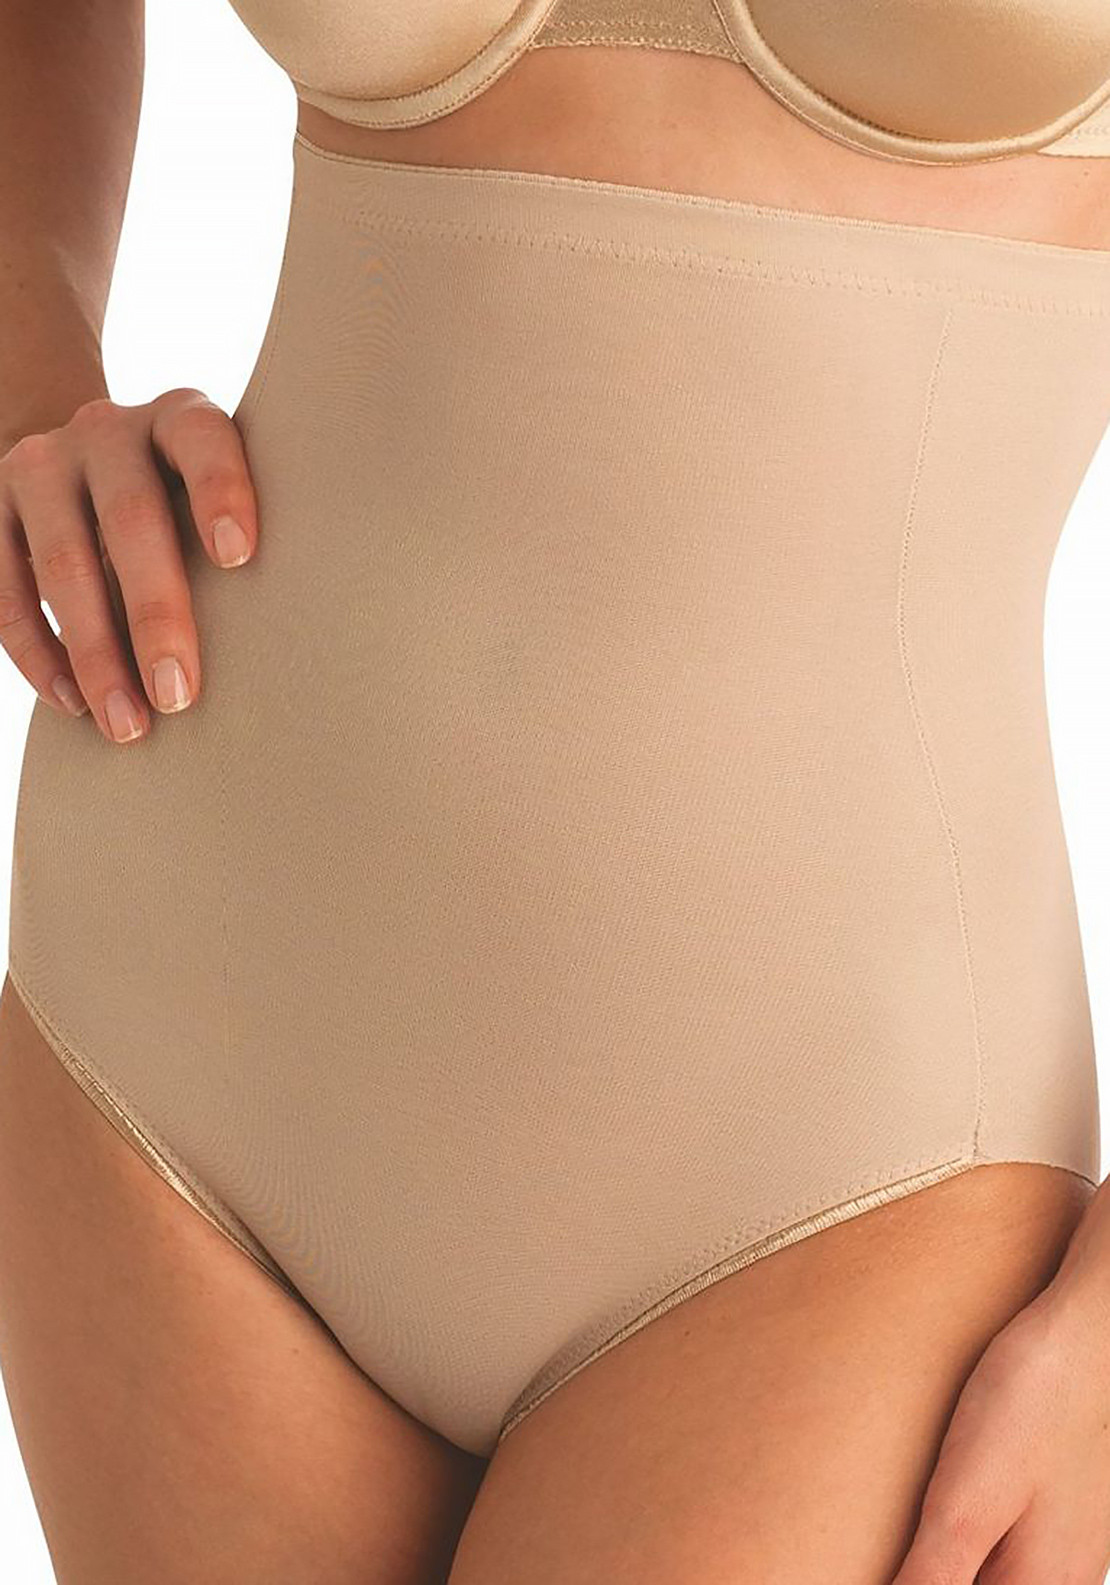 Naomi and Nicole High Waist Control Brief, Nude